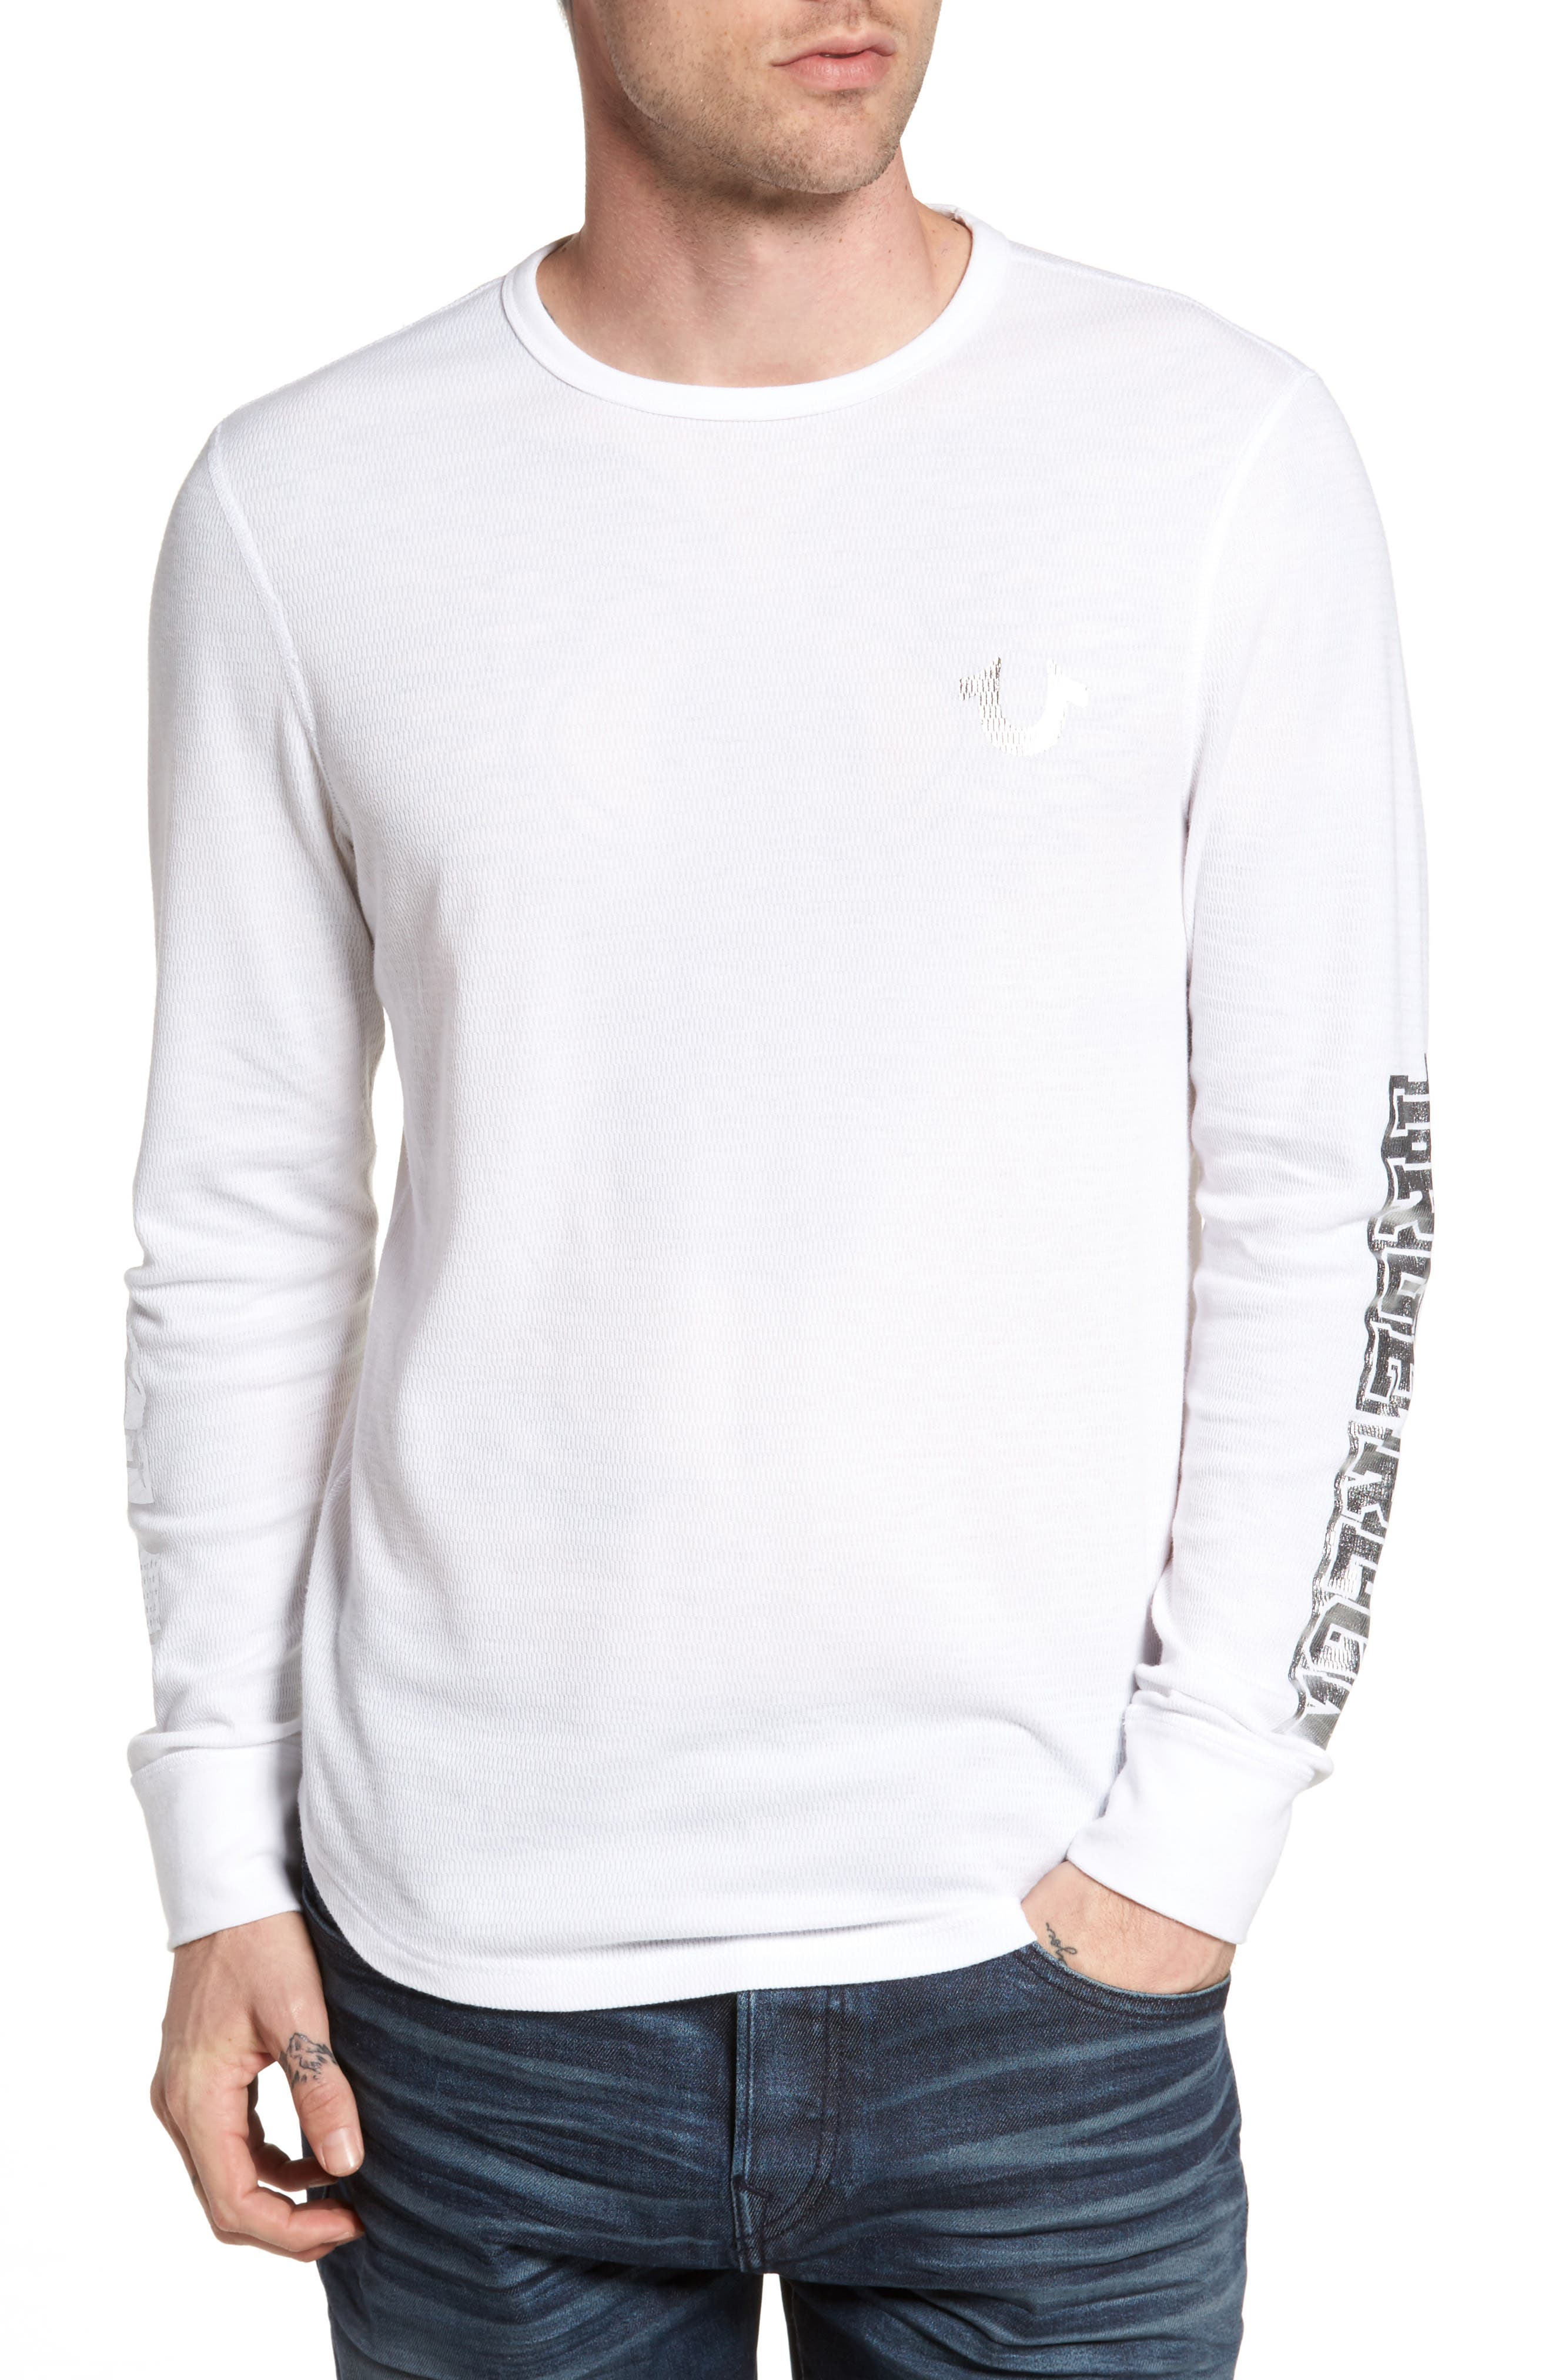 True Religion Brand Jeans Thermal T-Shirt